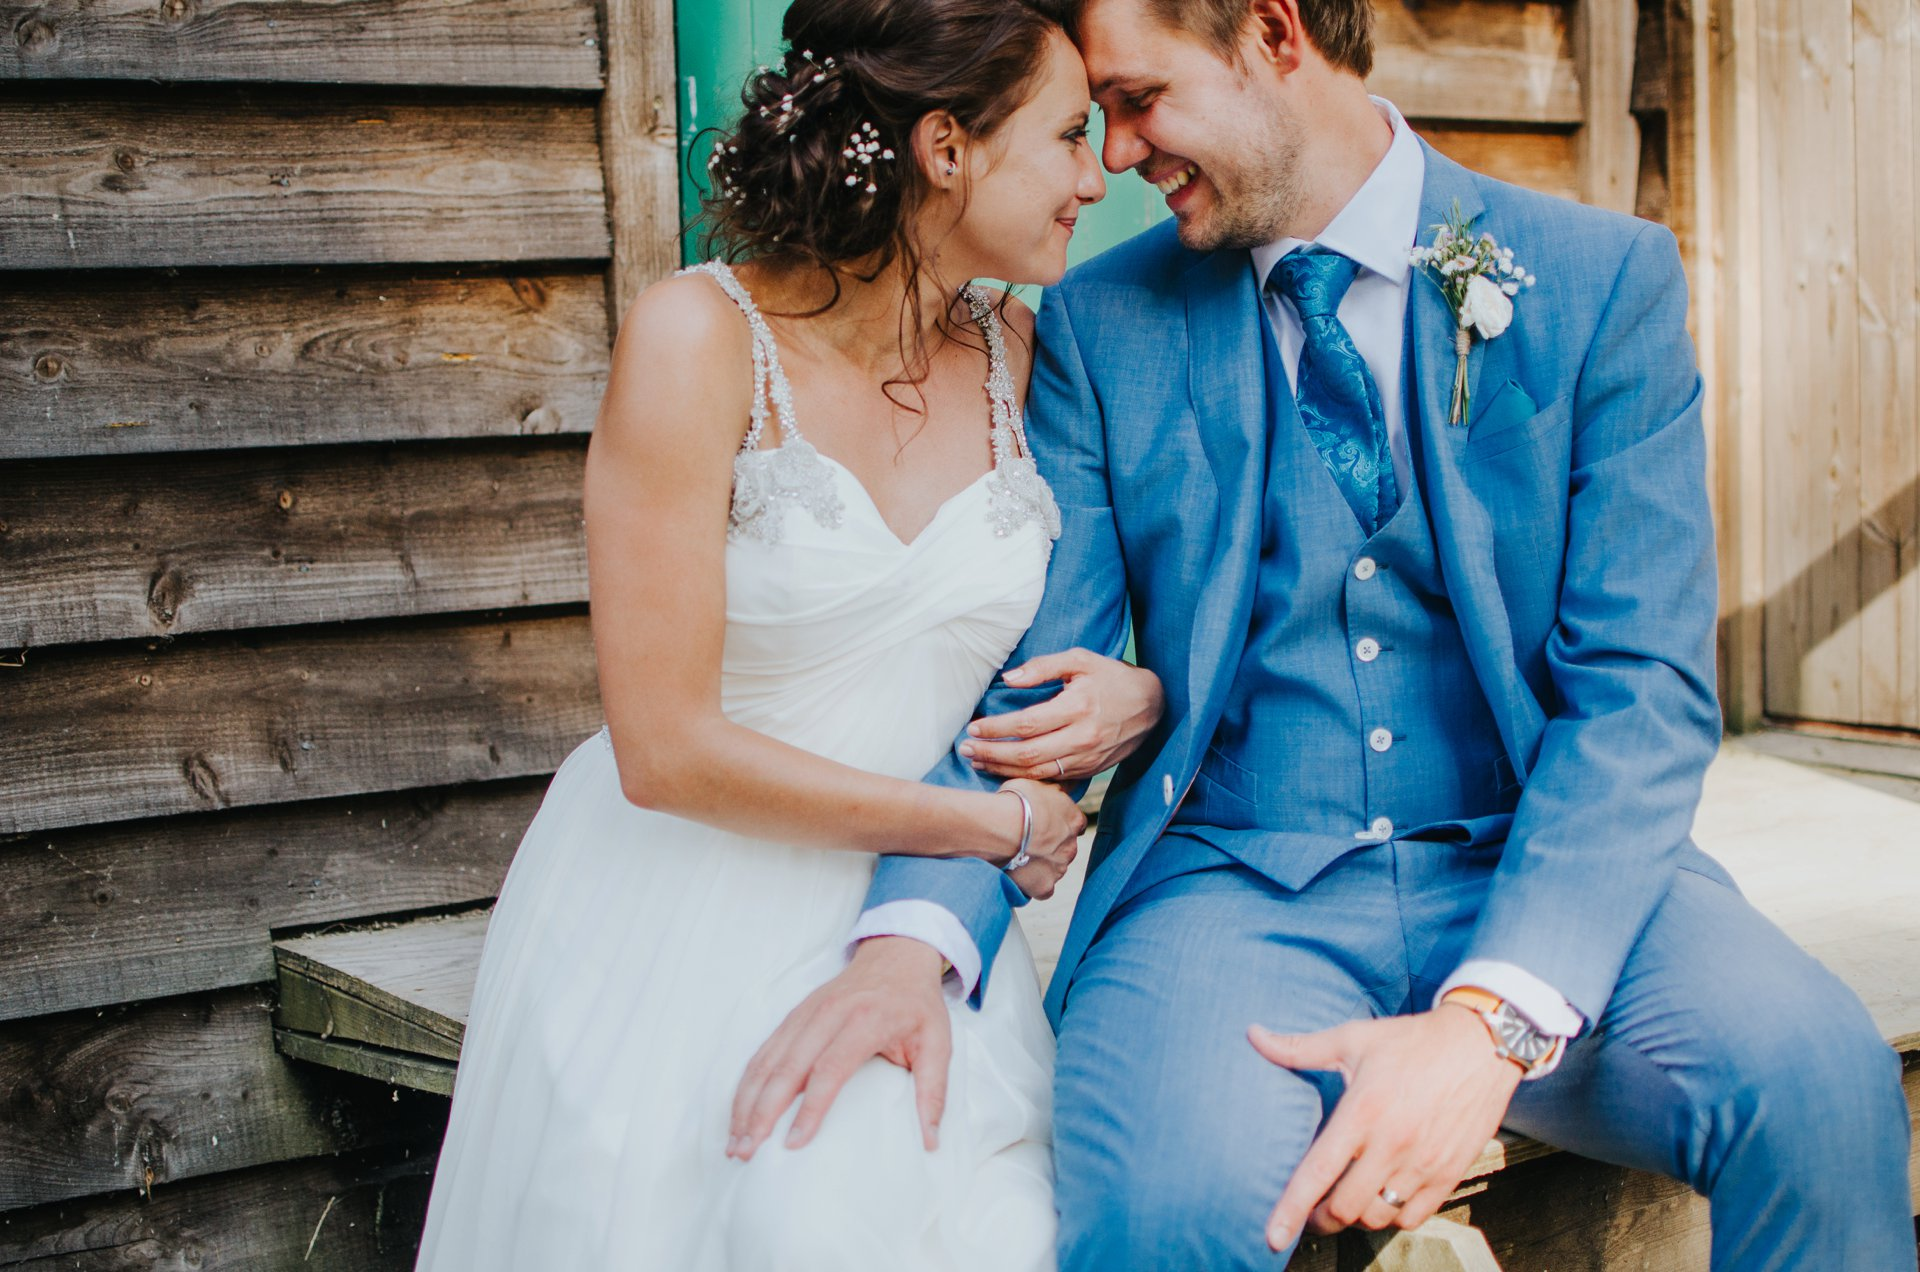 TOP TIMING HINTS & TIPS WHEN PLANNING A RELAXED WEDDING